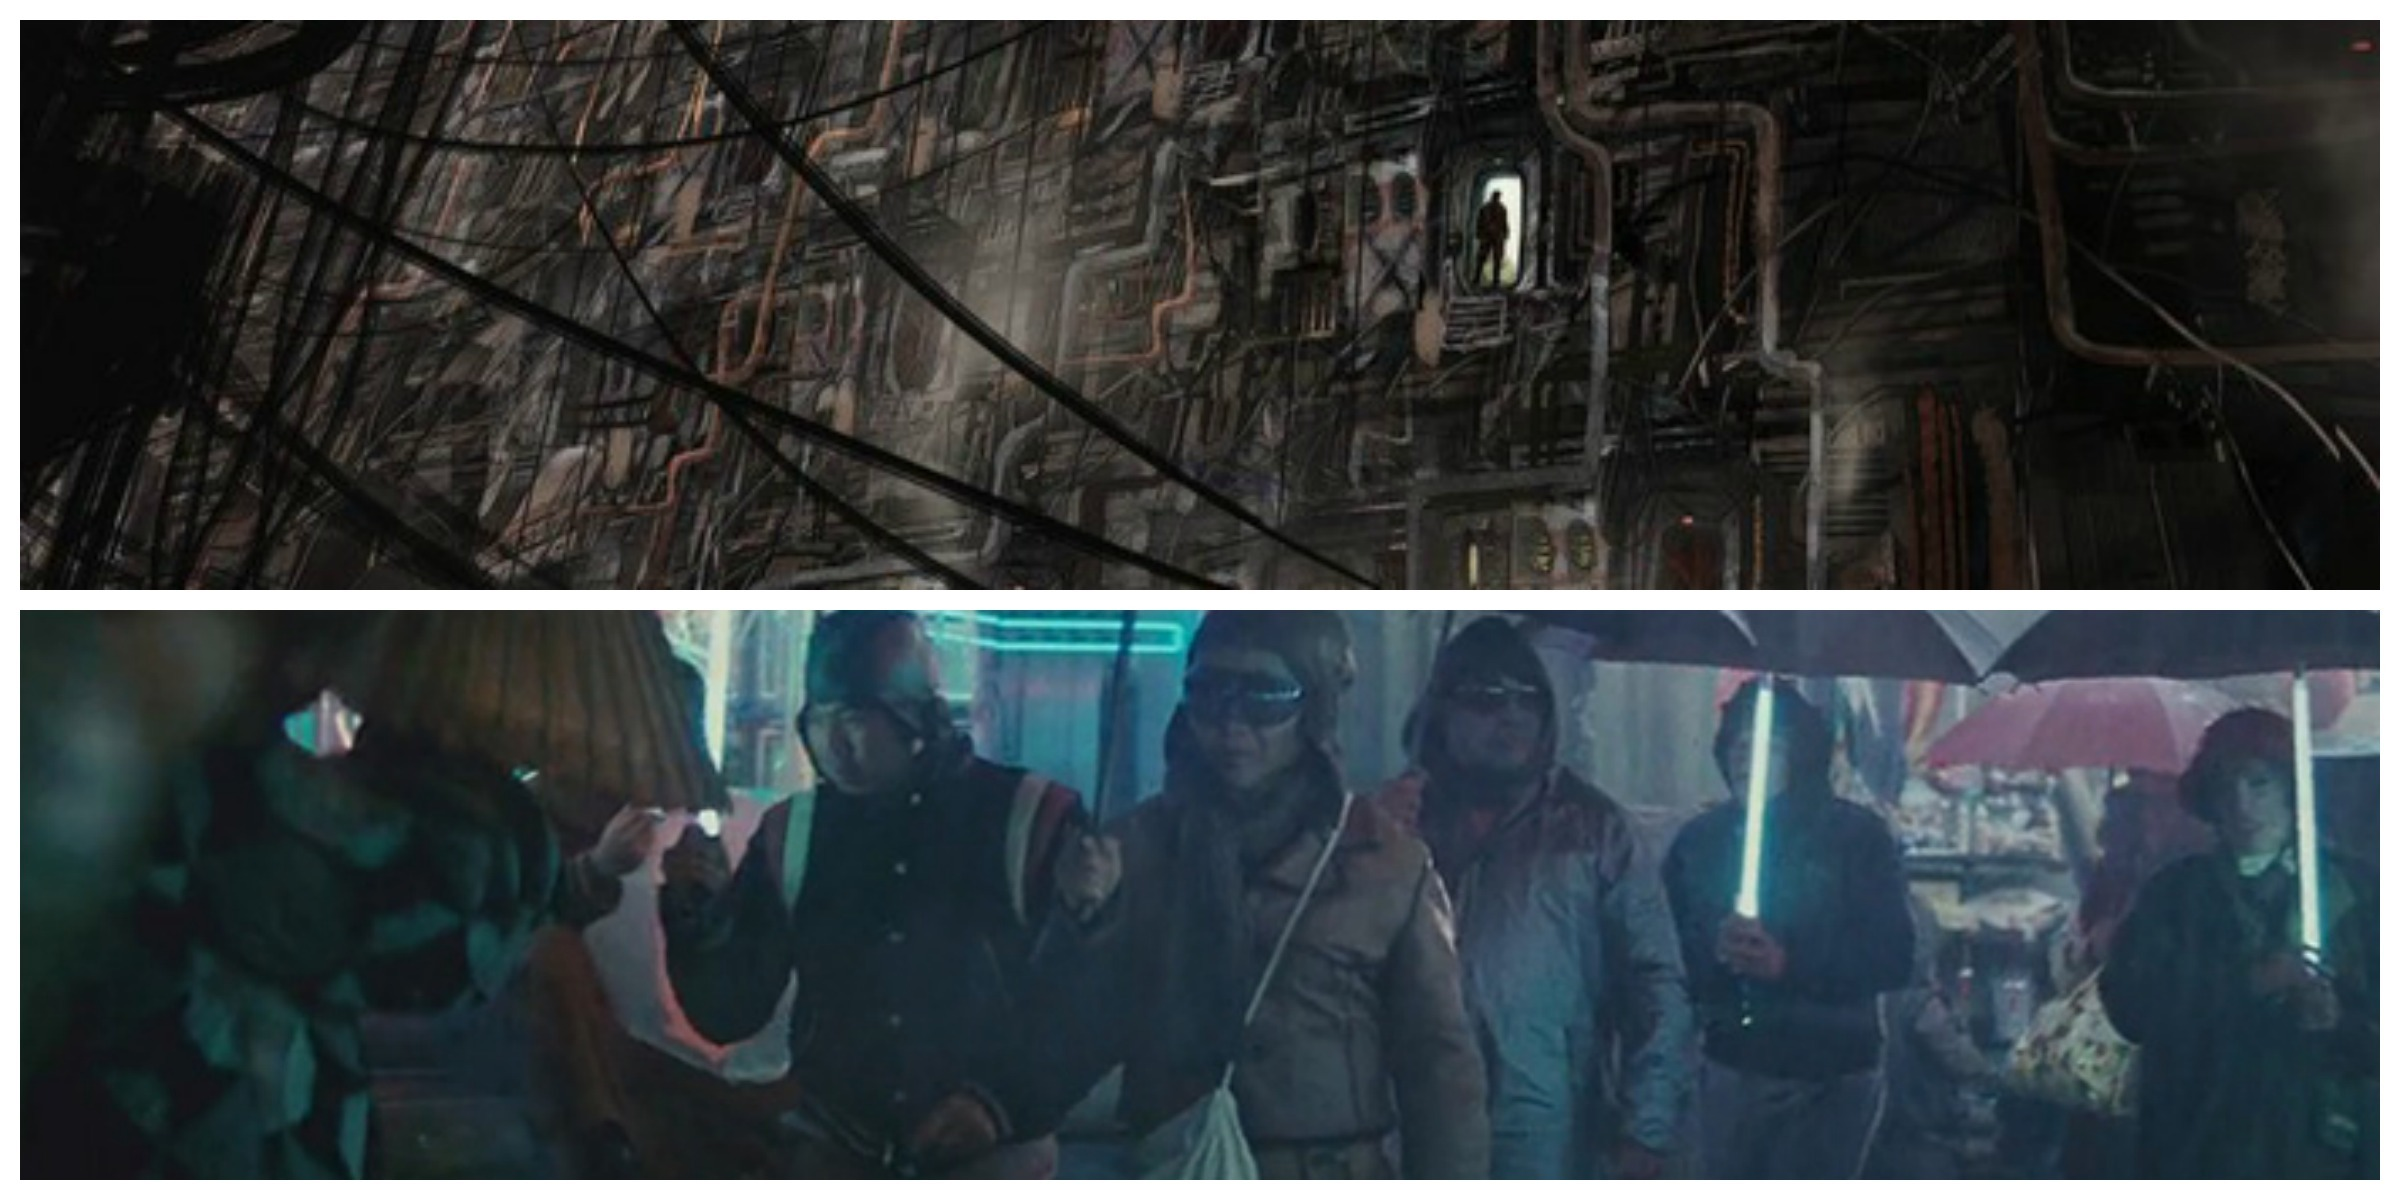 ABOVE: 'Rogue One' concept art for Ring of Kafrene. BELOW: 'Blade Runner' marketplace.